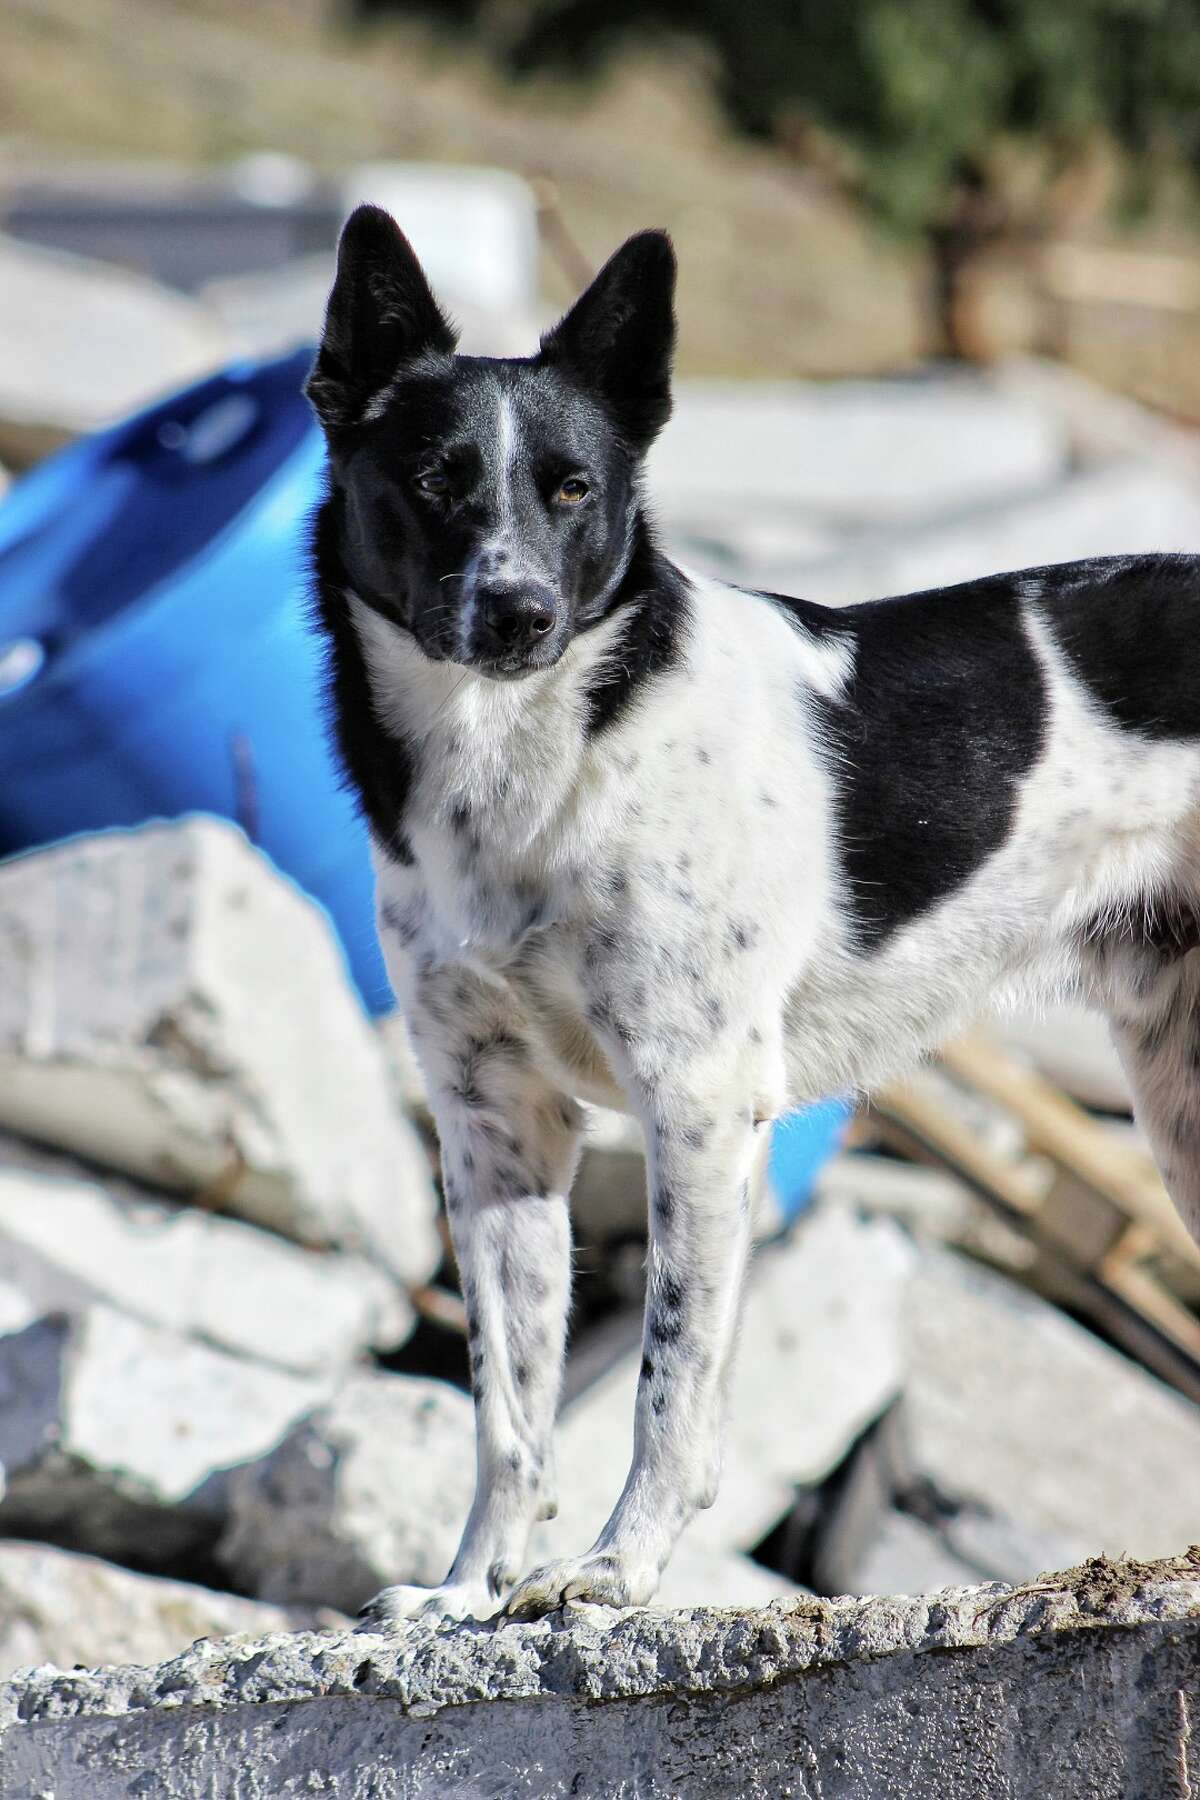 Rocket, who is currently aiding first responders in the wake of Hurricane Harvey, was once on the euthanasia list at a Sacramento shelter.